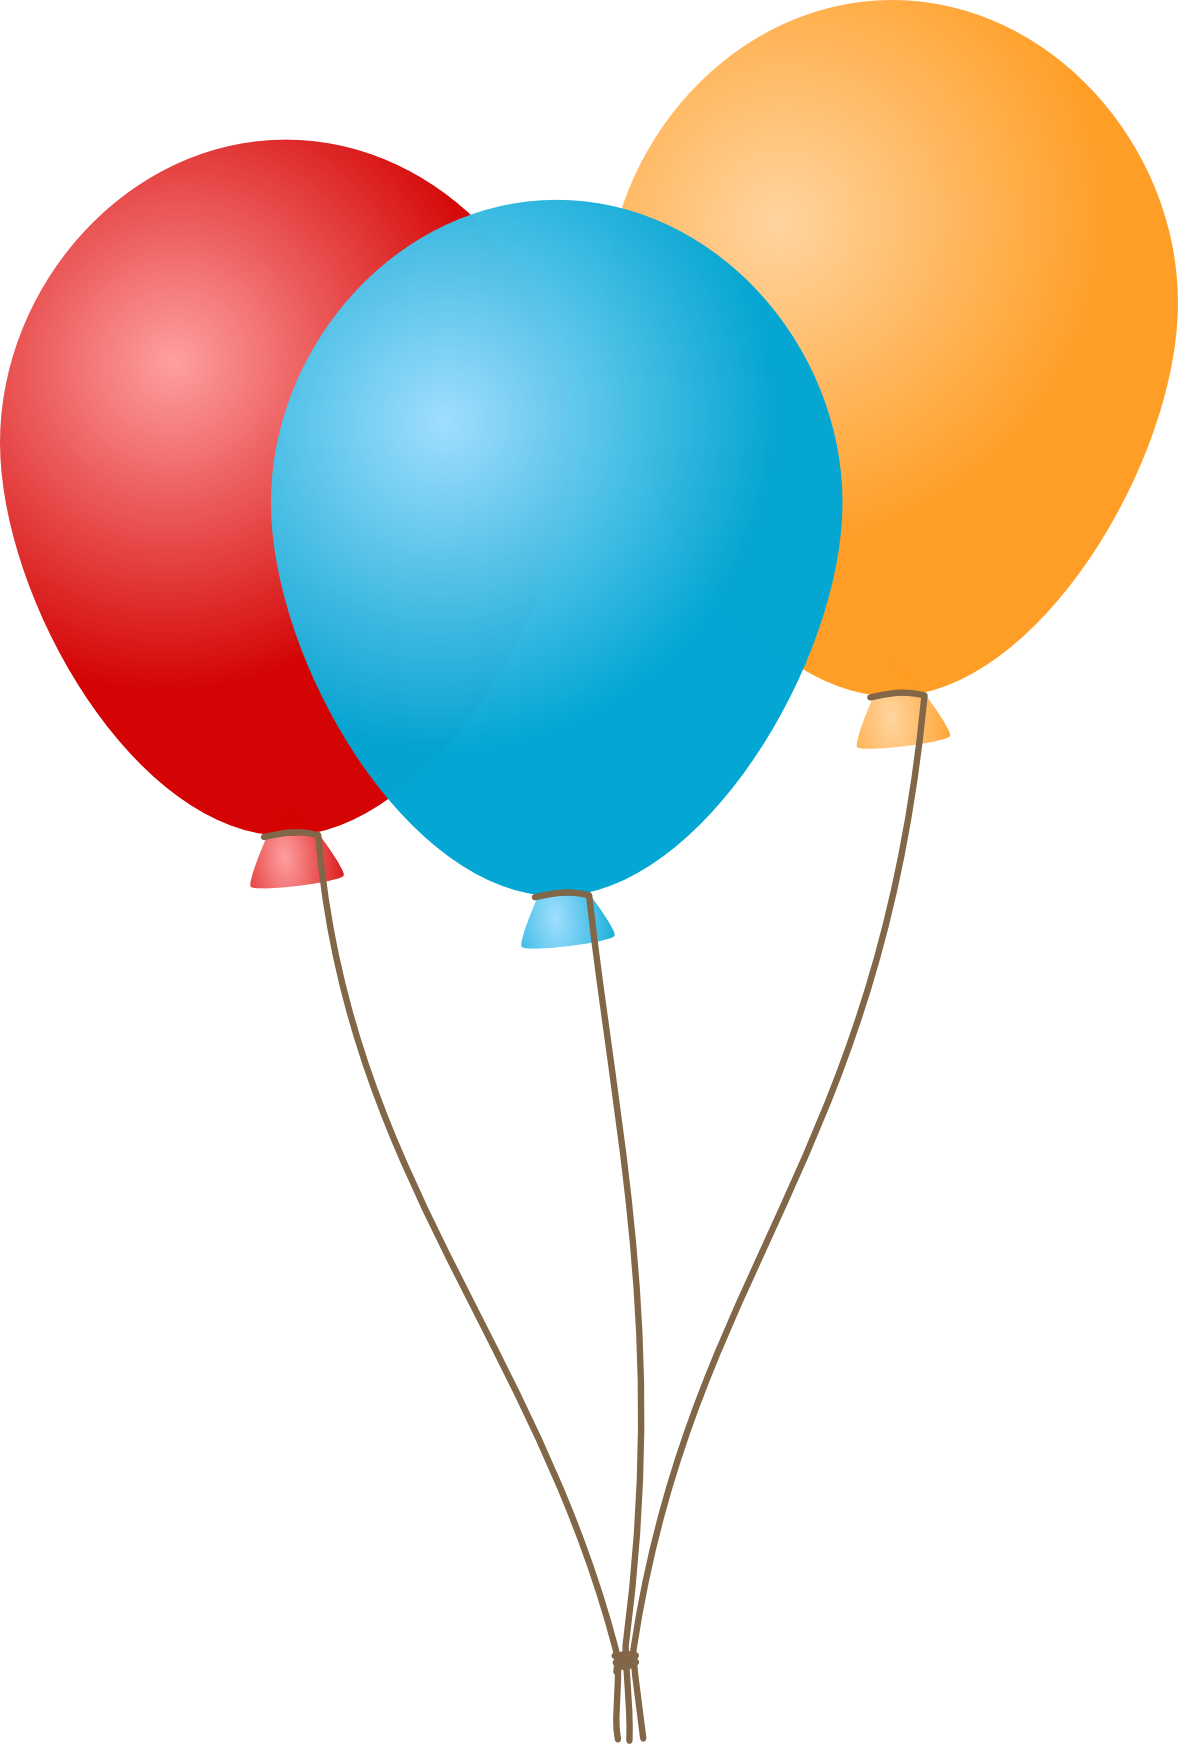 svg royalty free download Balloon PNG images